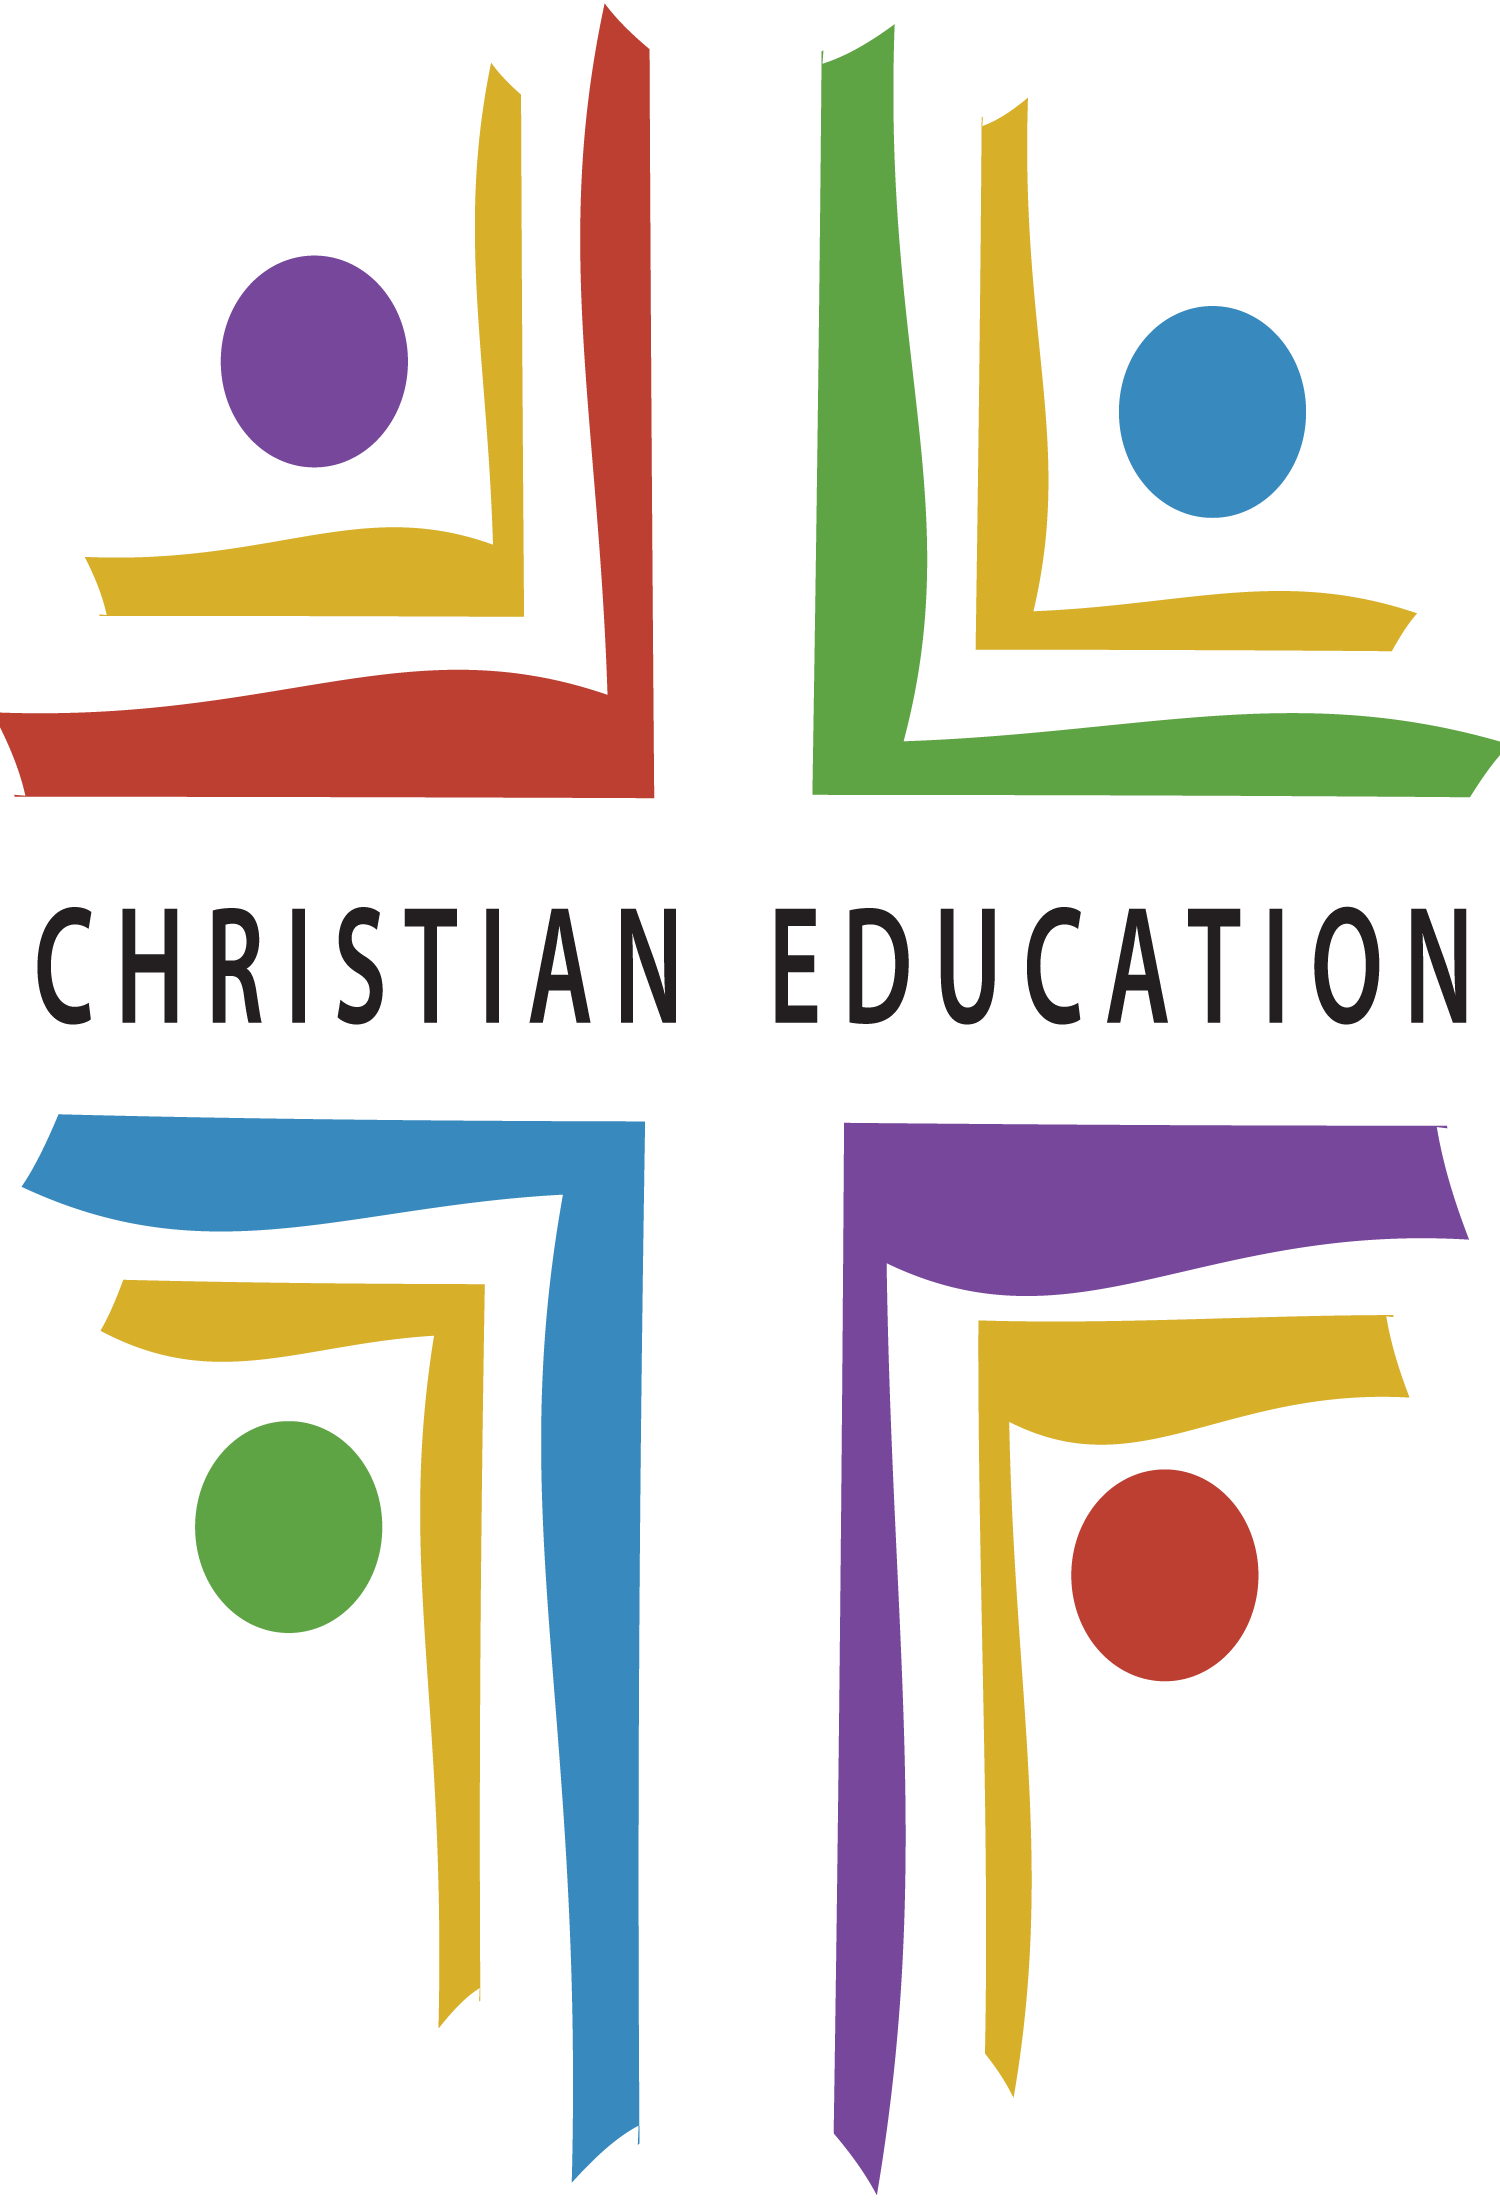 Christian Education.png